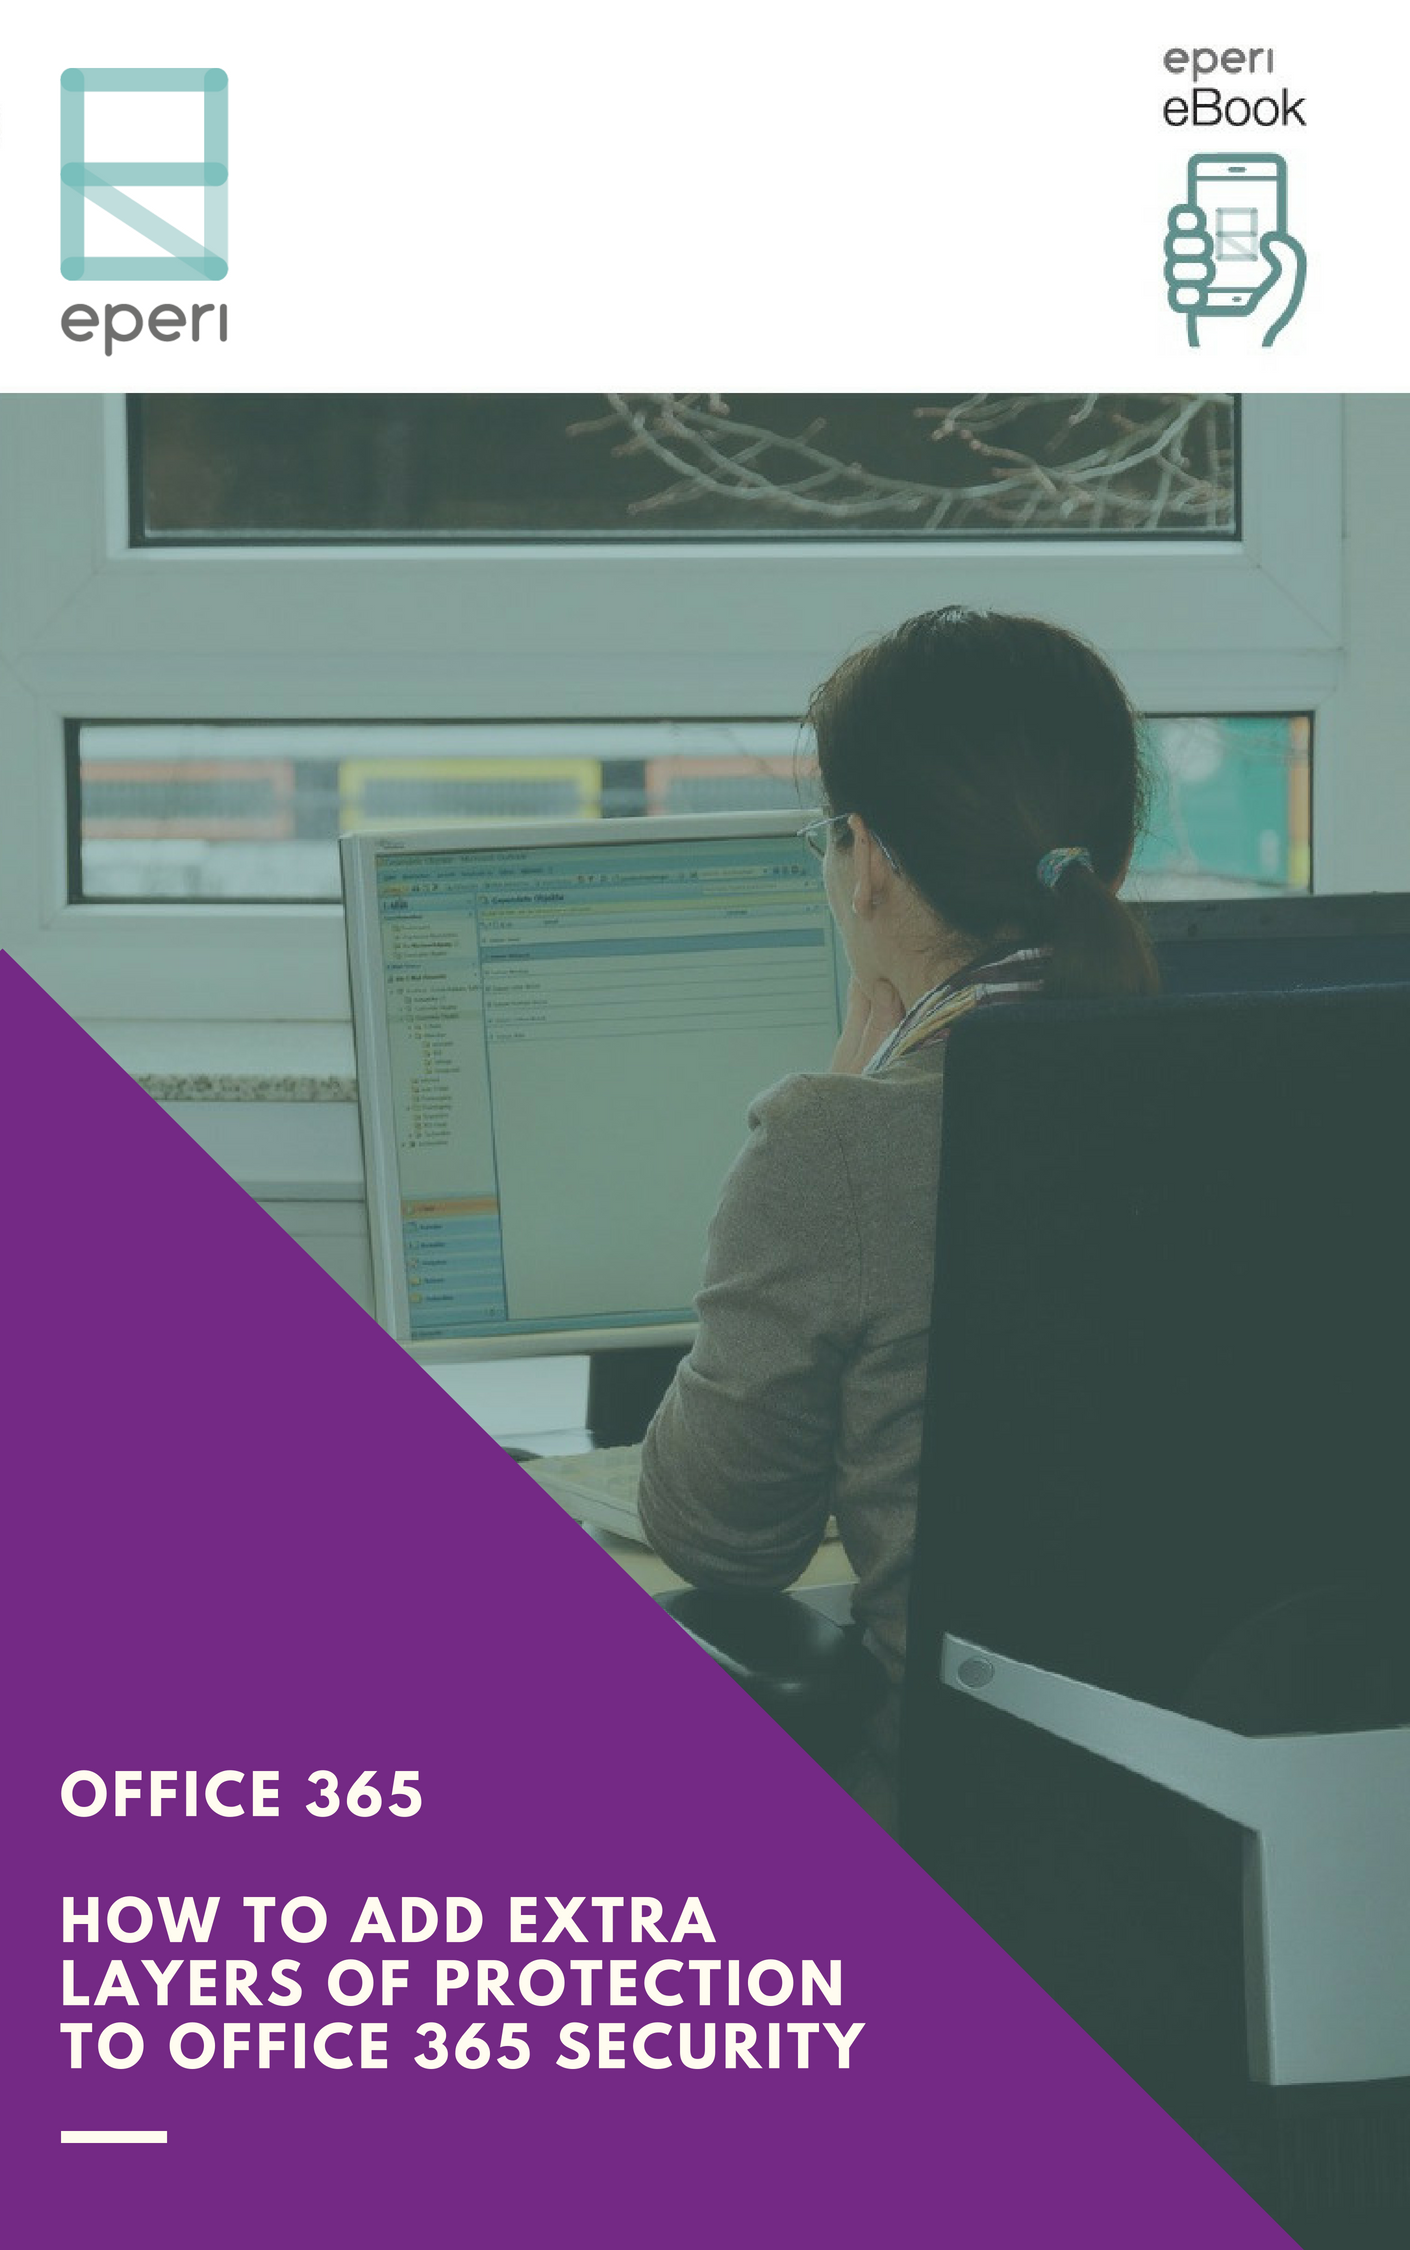 eperi eBook Office 365 Security Cover